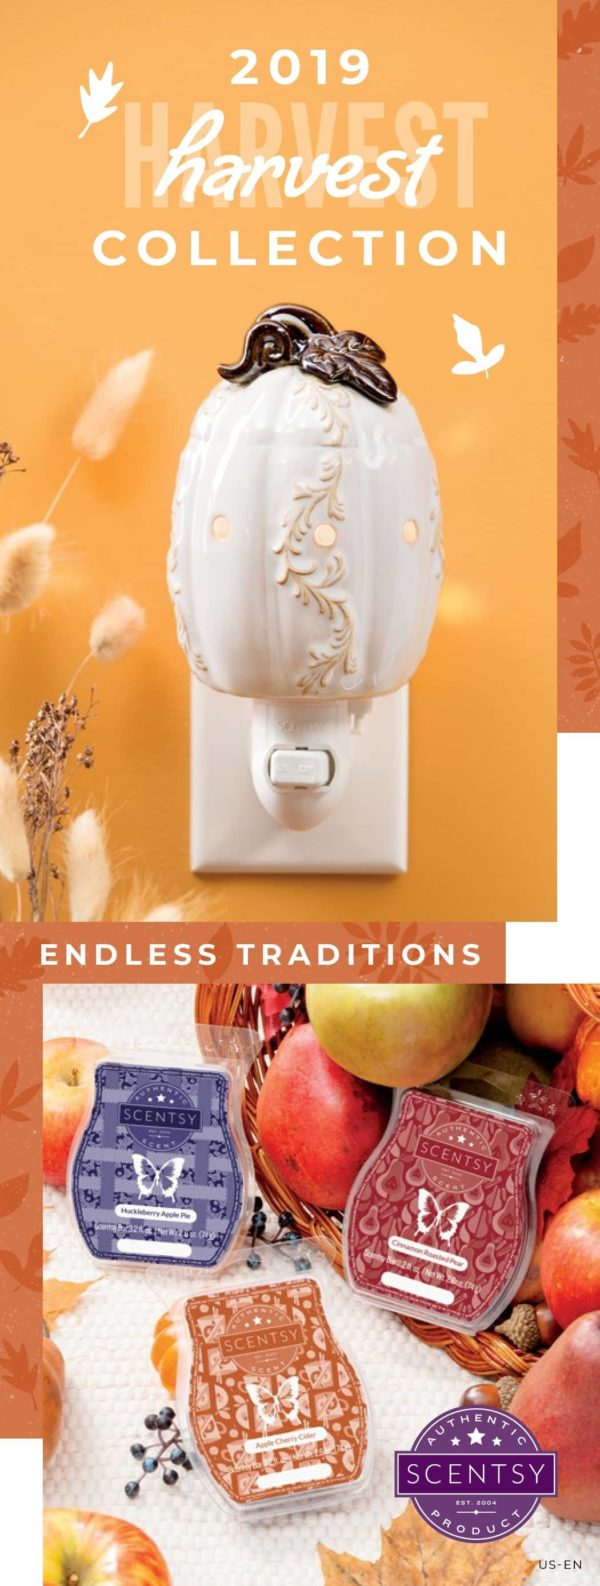 SCENTSY HARVEST 2019 BROCHURE COLLECTION